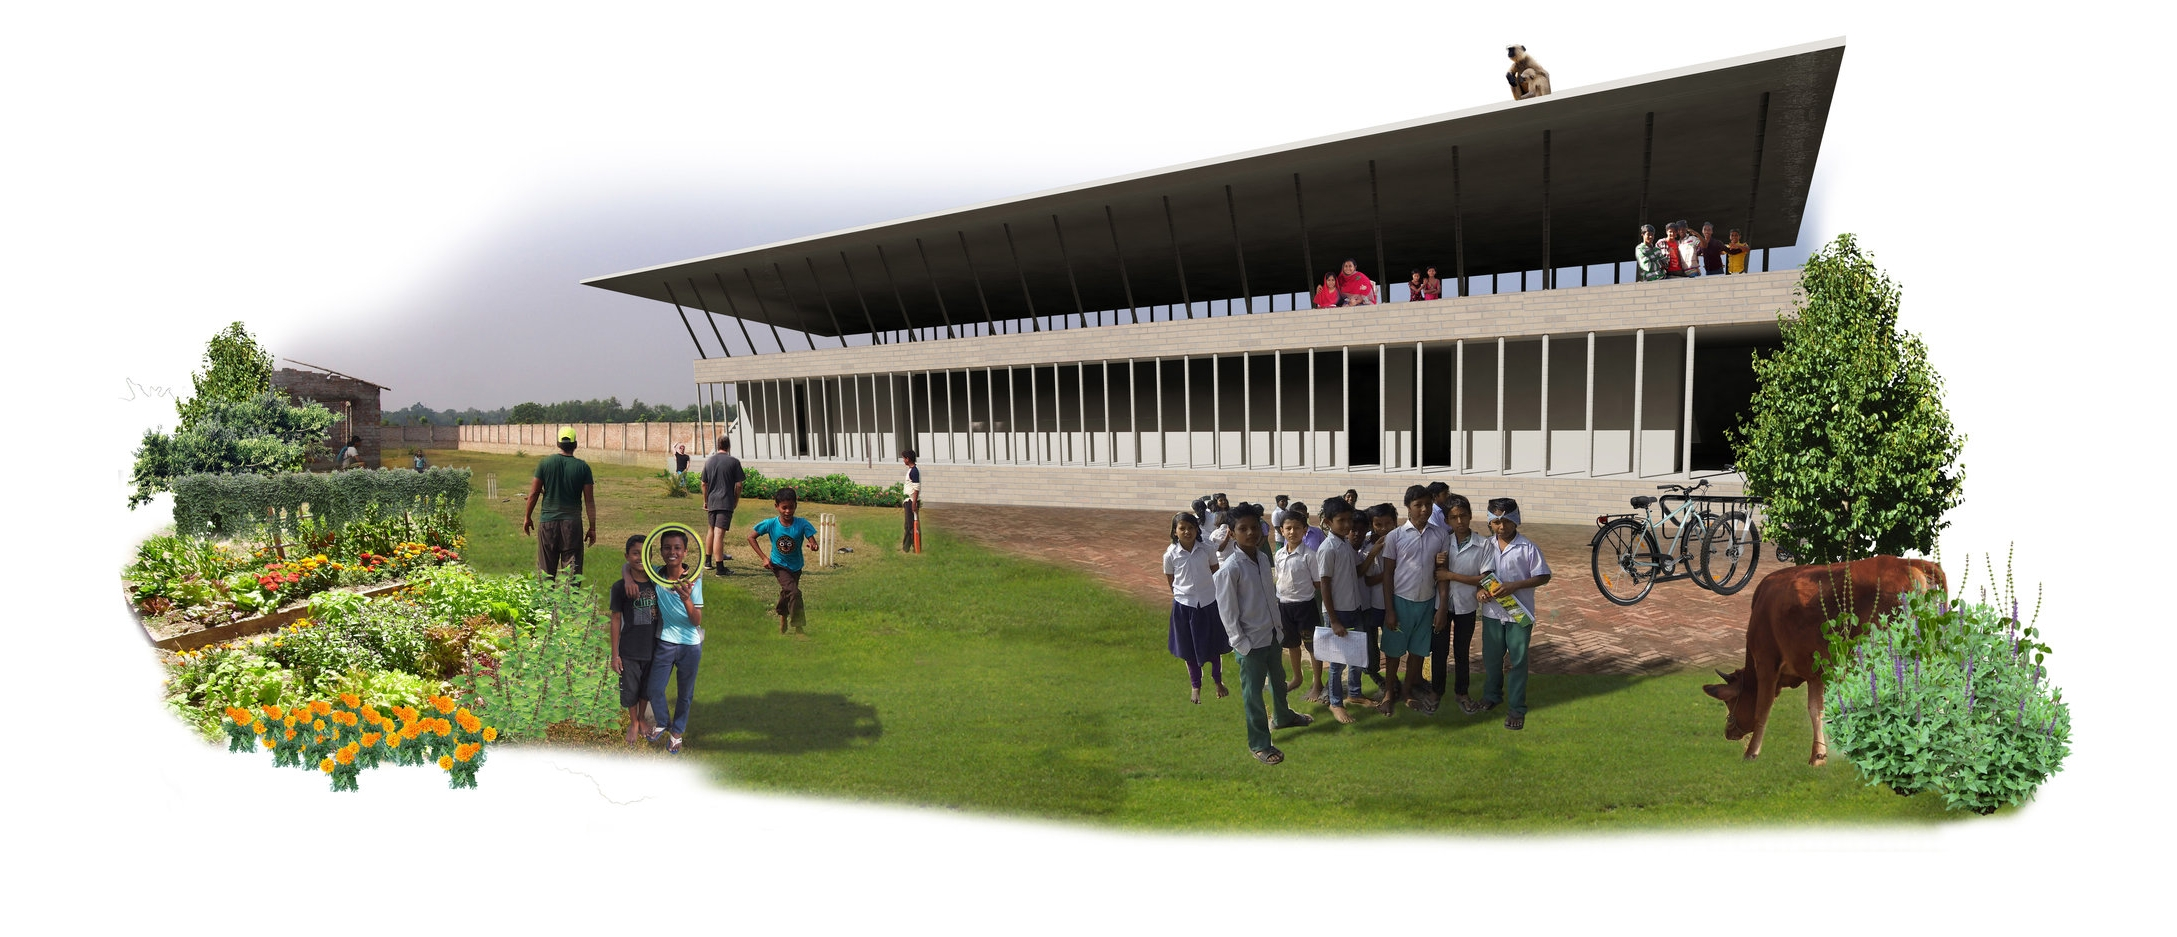 WATCH THIS SPACE FOR MORE UPDATES ON THE SCHOOL COMING SOON! -